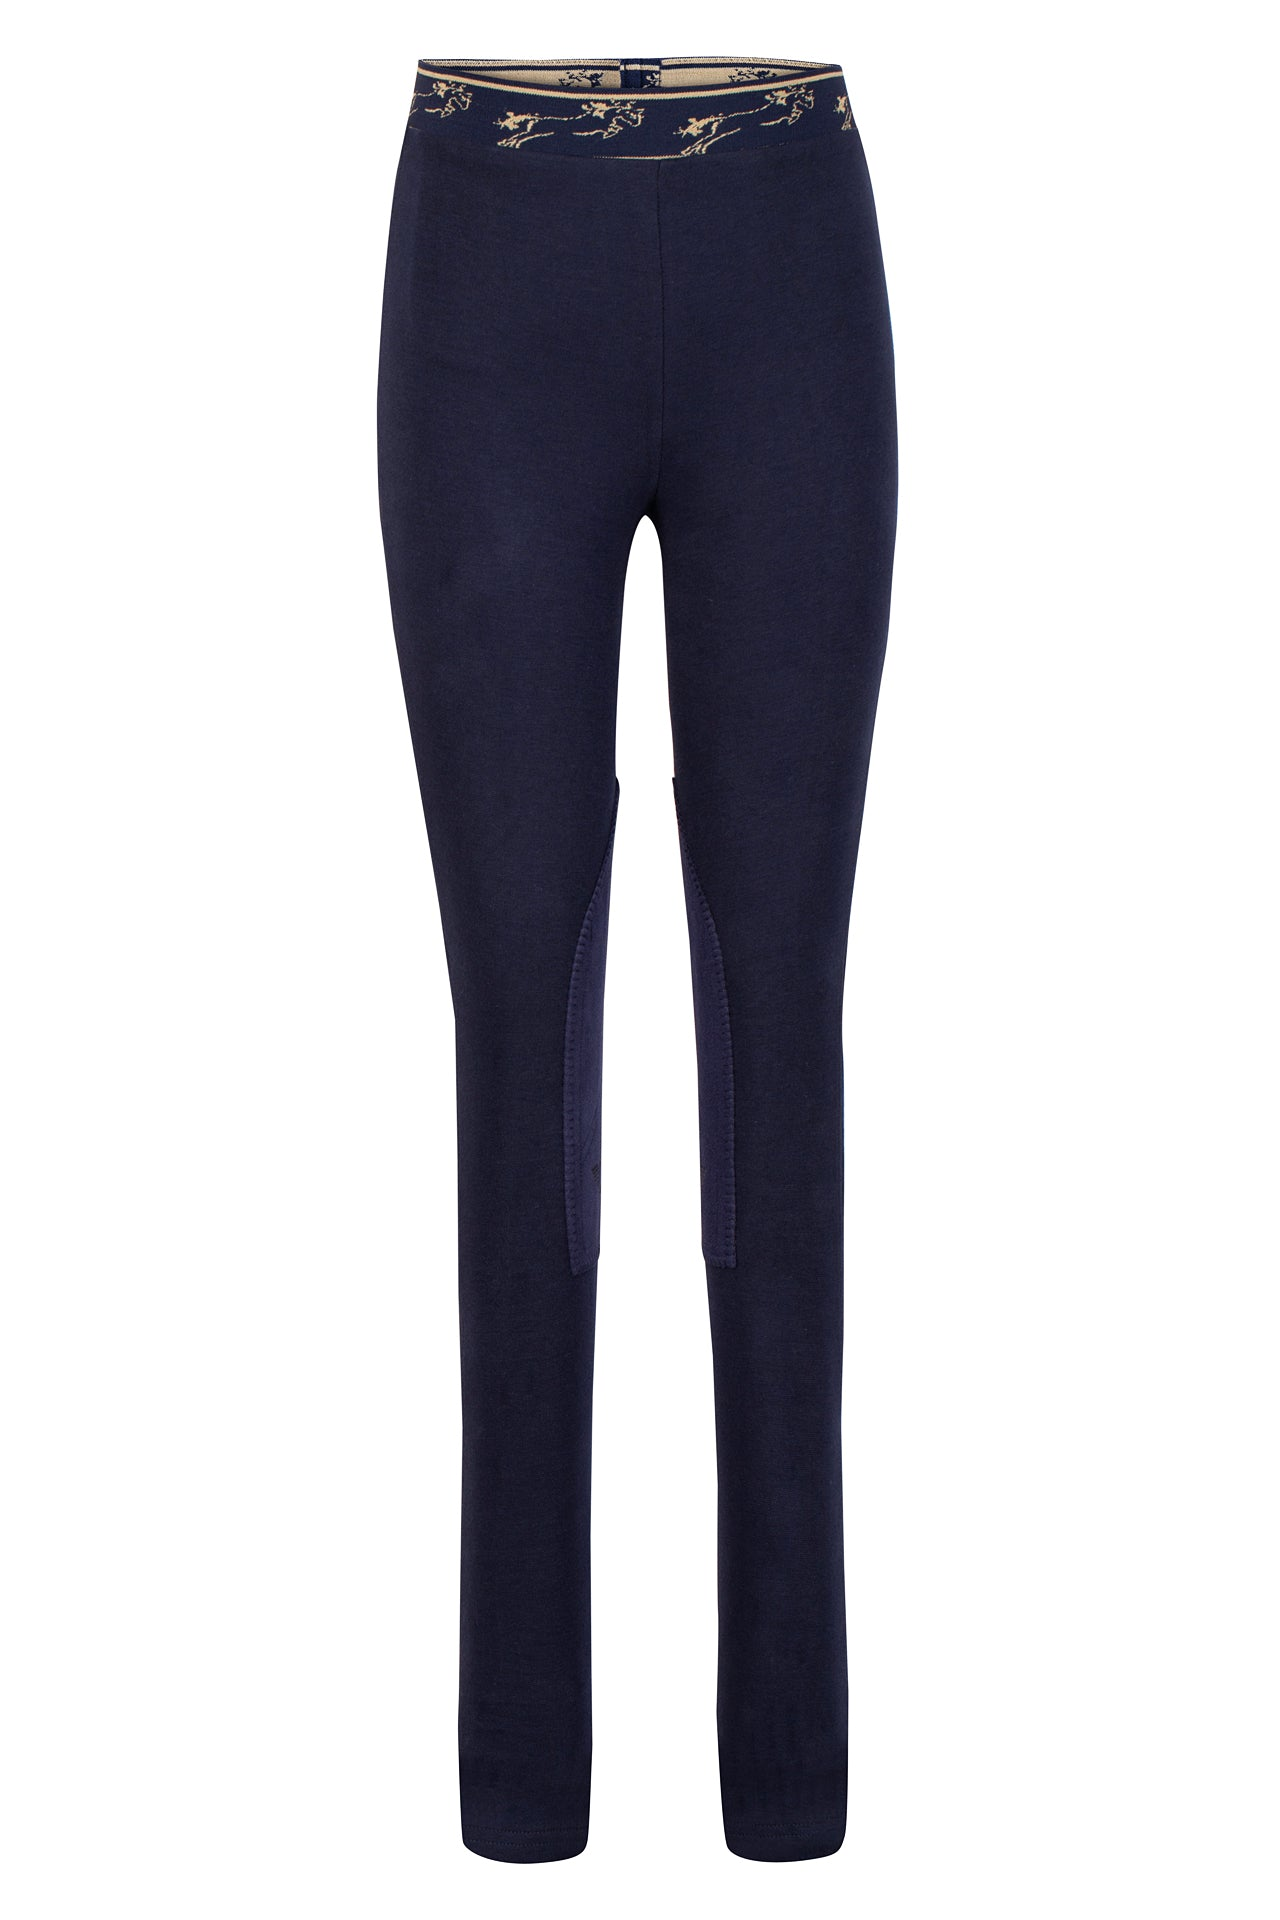 TuffRider Children's Cotton Schooler Jodhpurs - TuffRider - Breeches.com